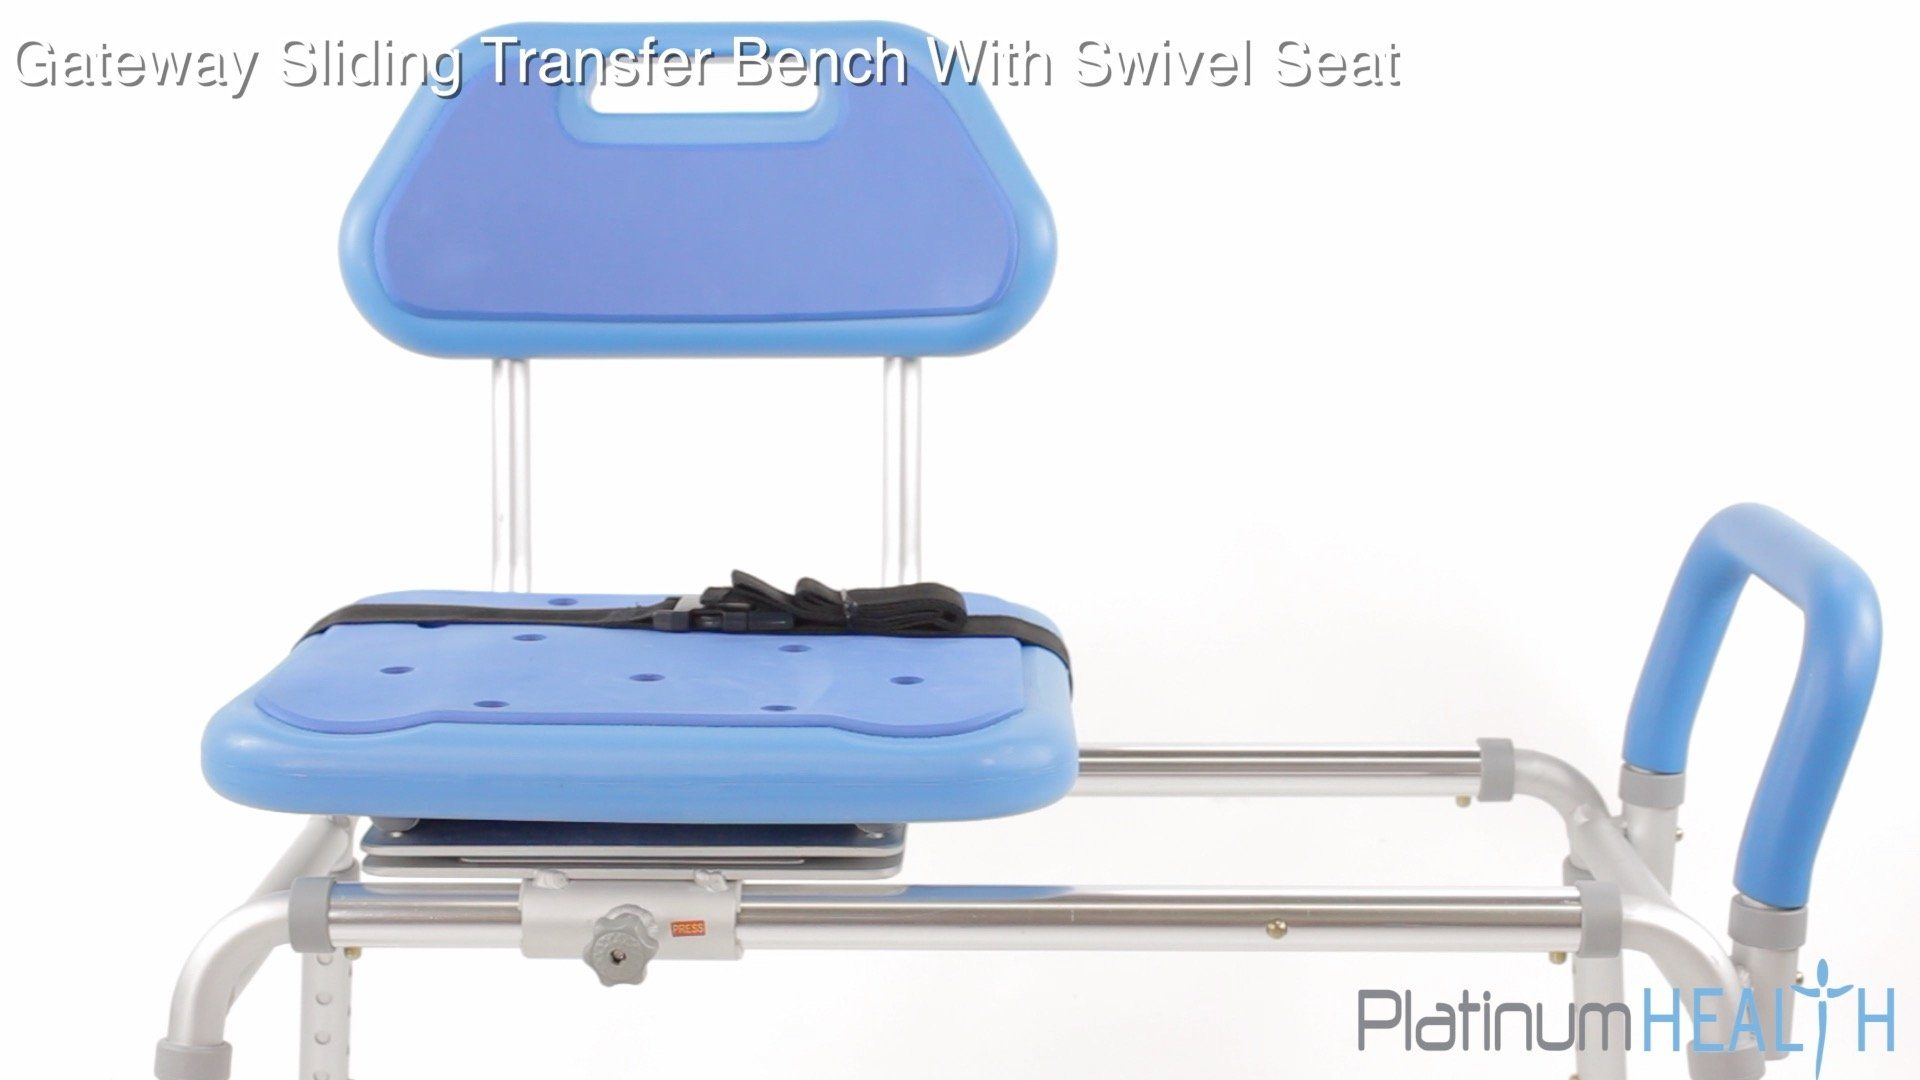 Surprising Gateway Premium Sliding Bath Transfer Bench With Swivel Seat Onthecornerstone Fun Painted Chair Ideas Images Onthecornerstoneorg